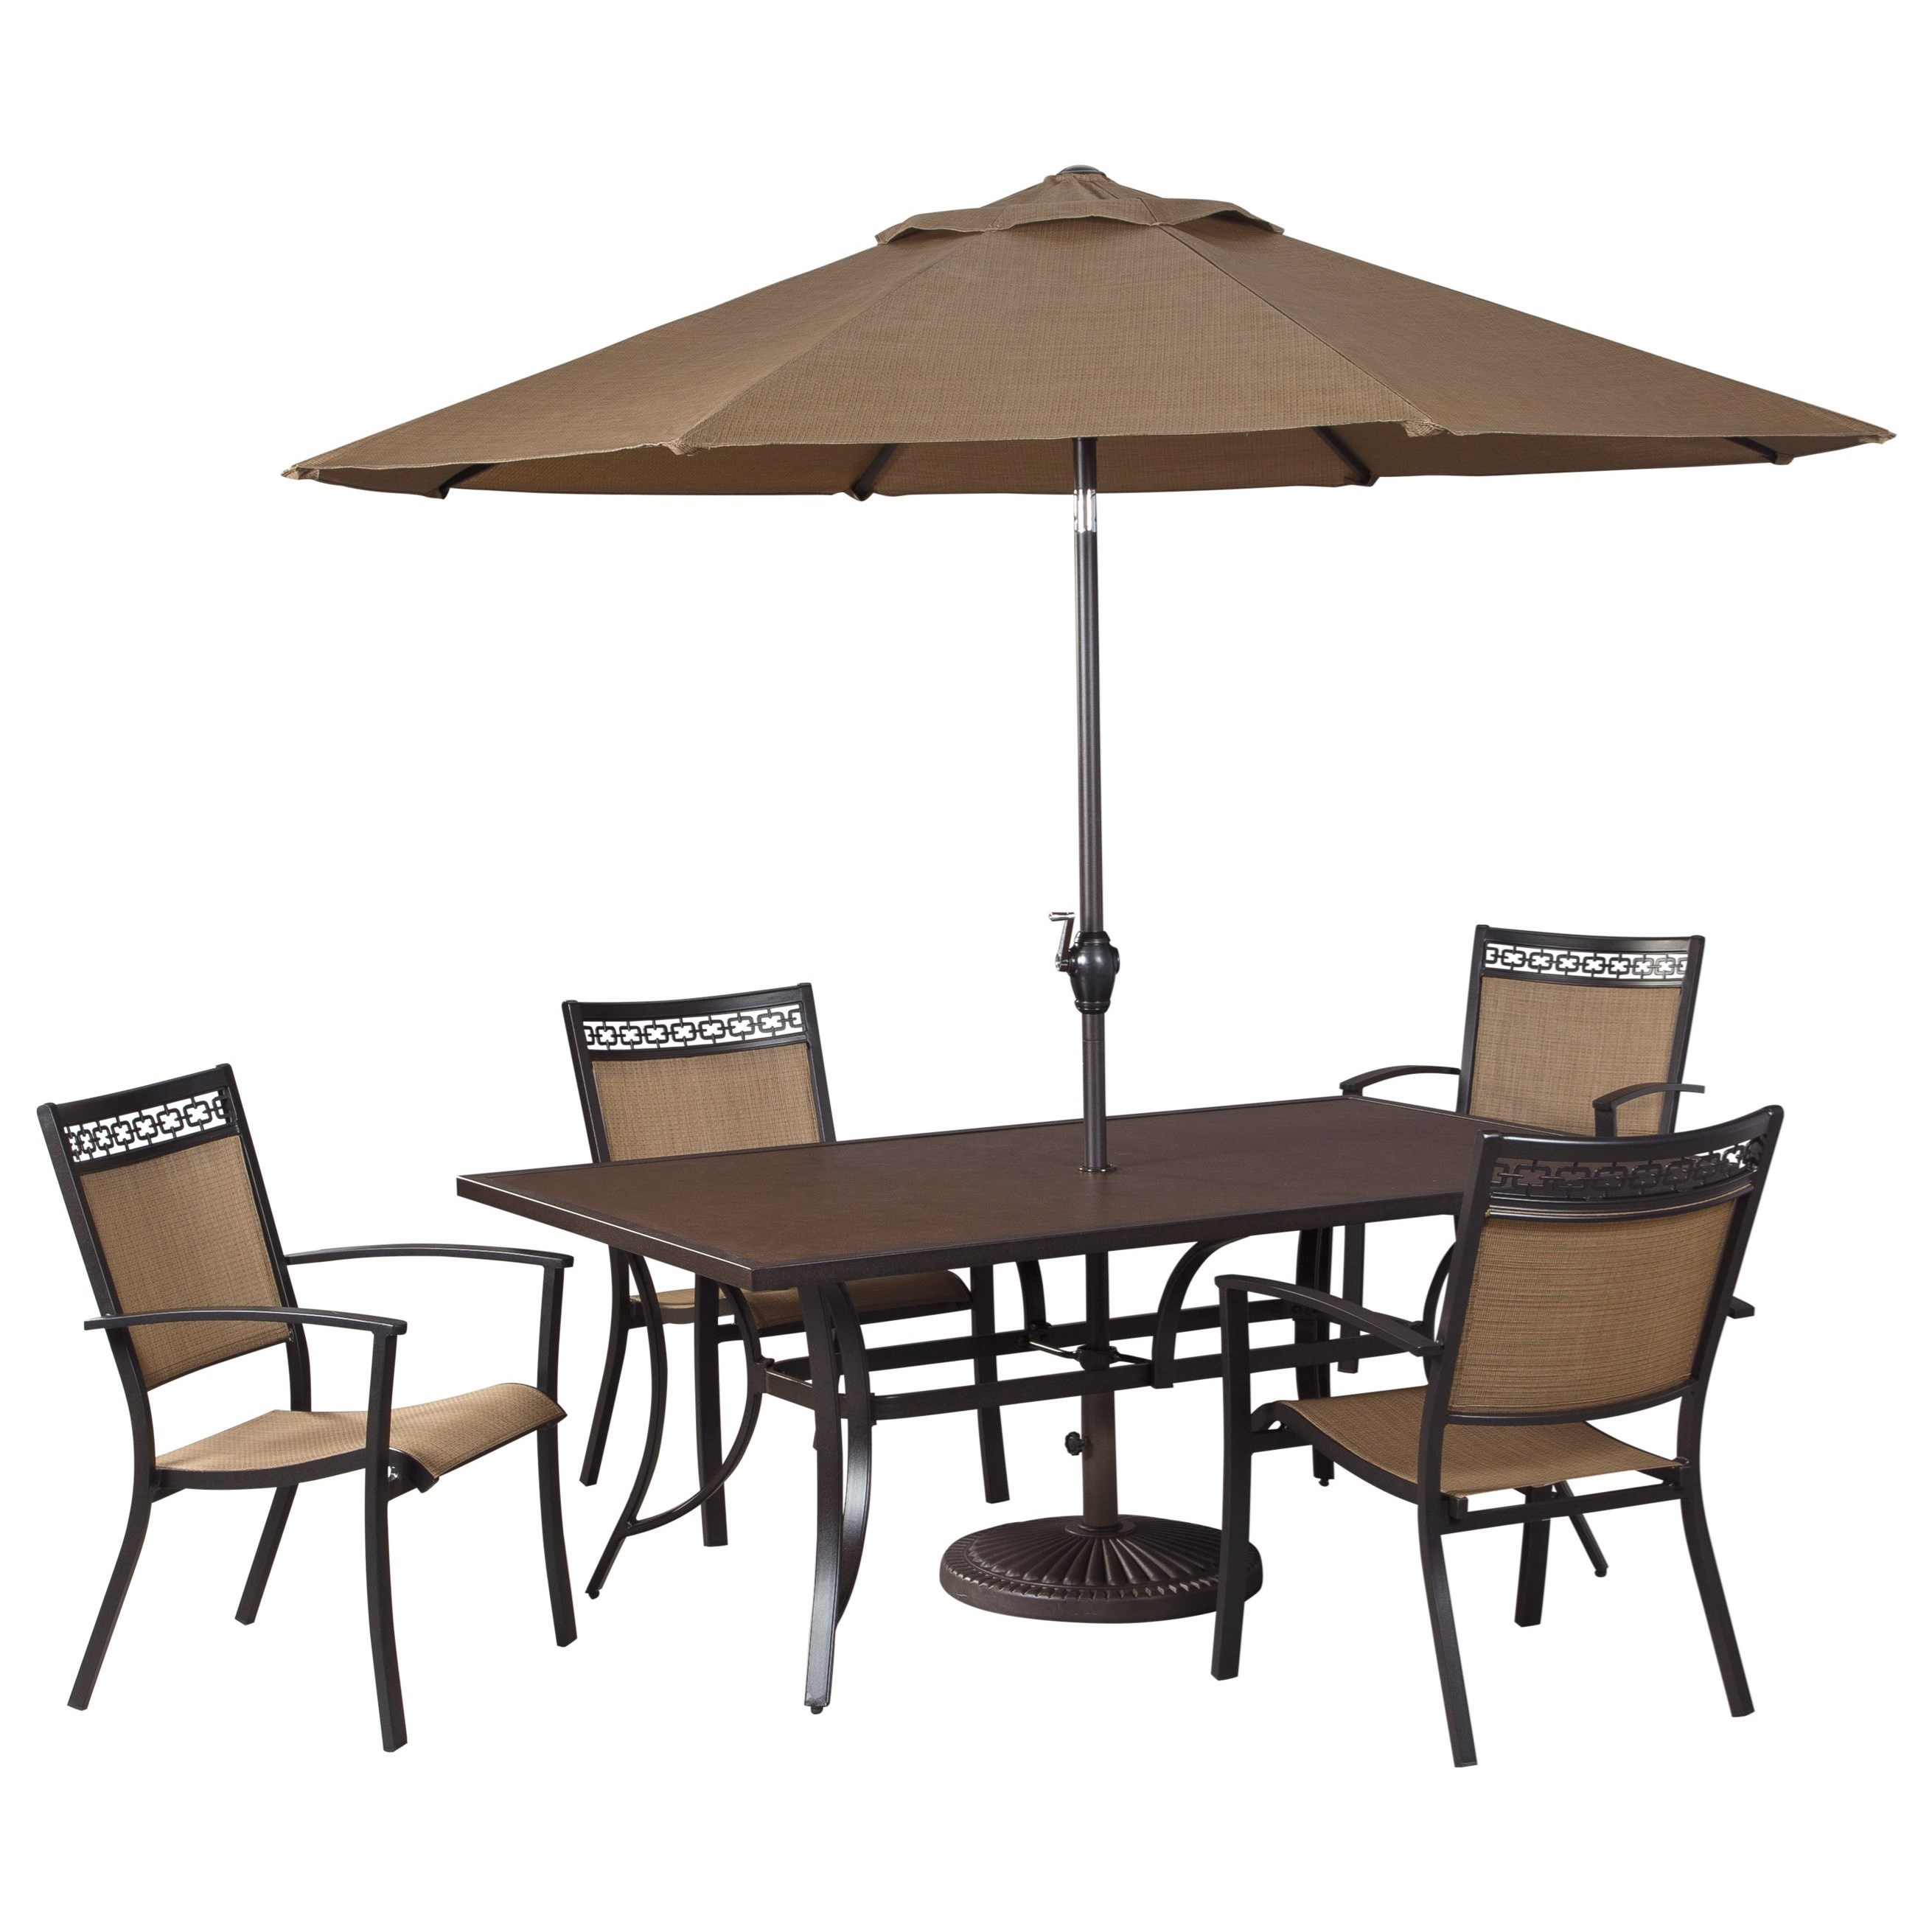 Signature Design by Ashley Carmadelia Outdoor Rectangular Dining Table Set w